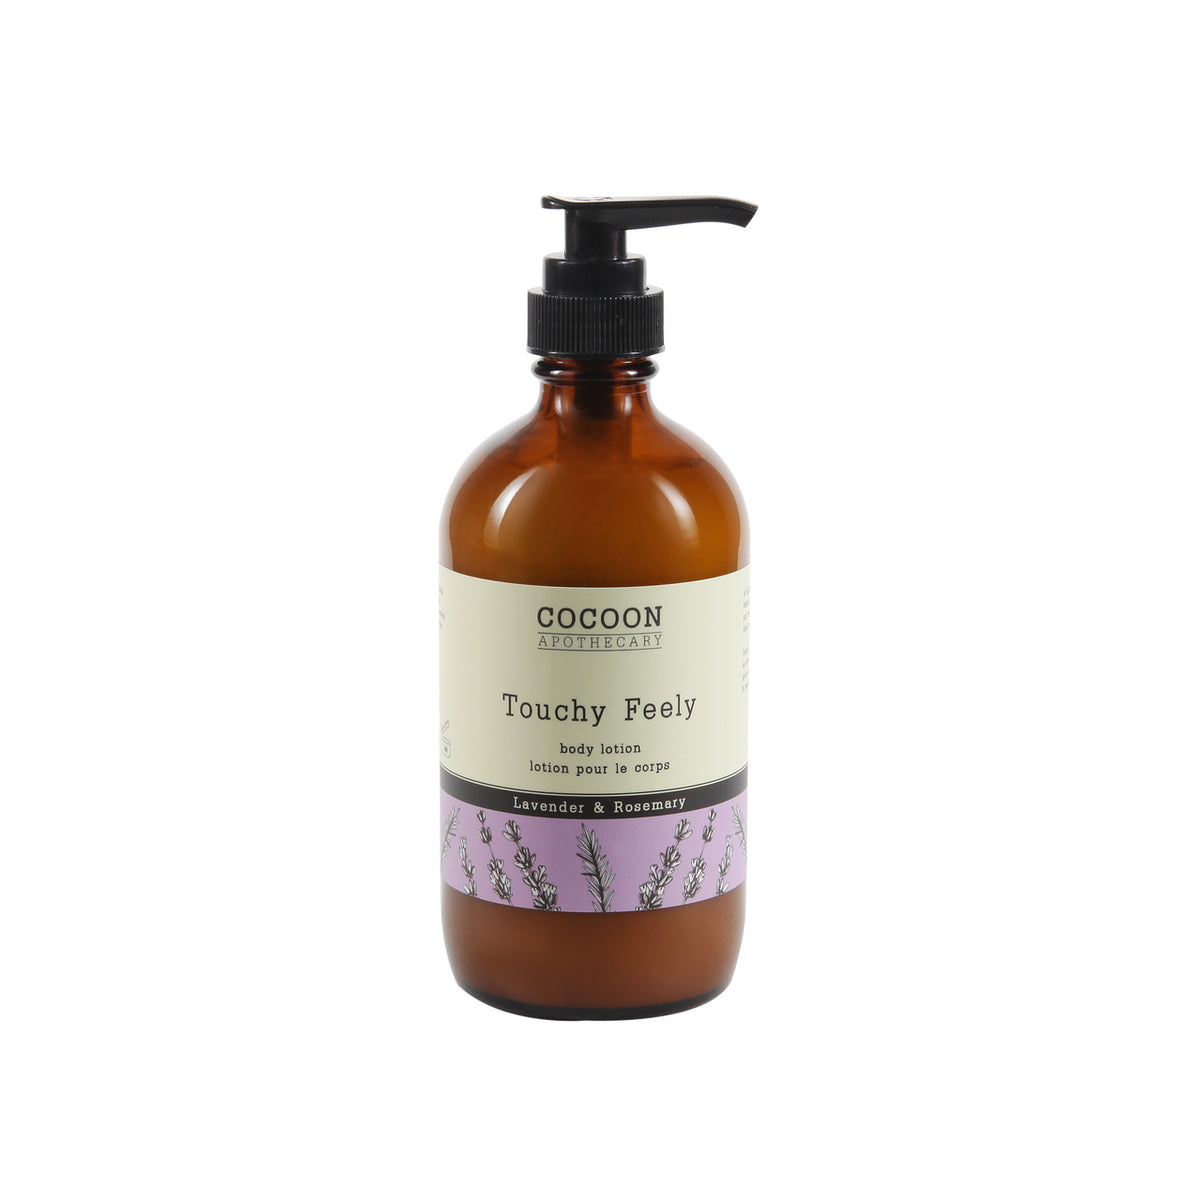 Cocoon Apothecary Touchy Feely Lotion